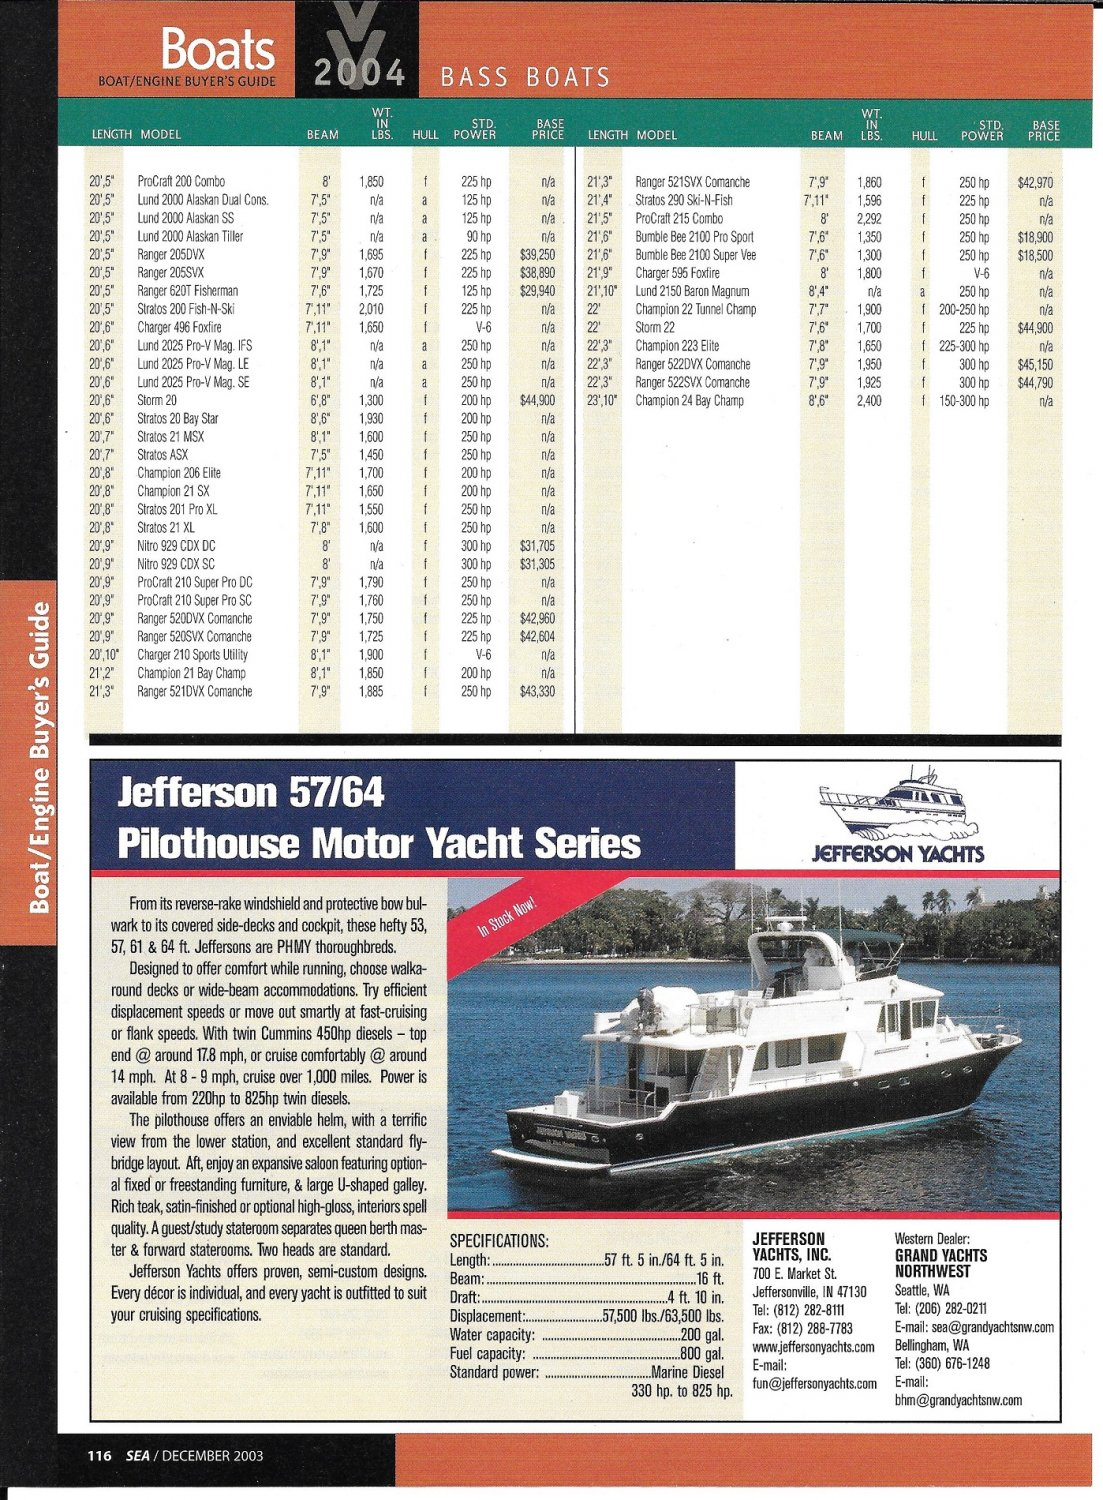 2004 Jefferson 57/64 Pilothouse Motor Yacht Review & Specs- Nice Photo